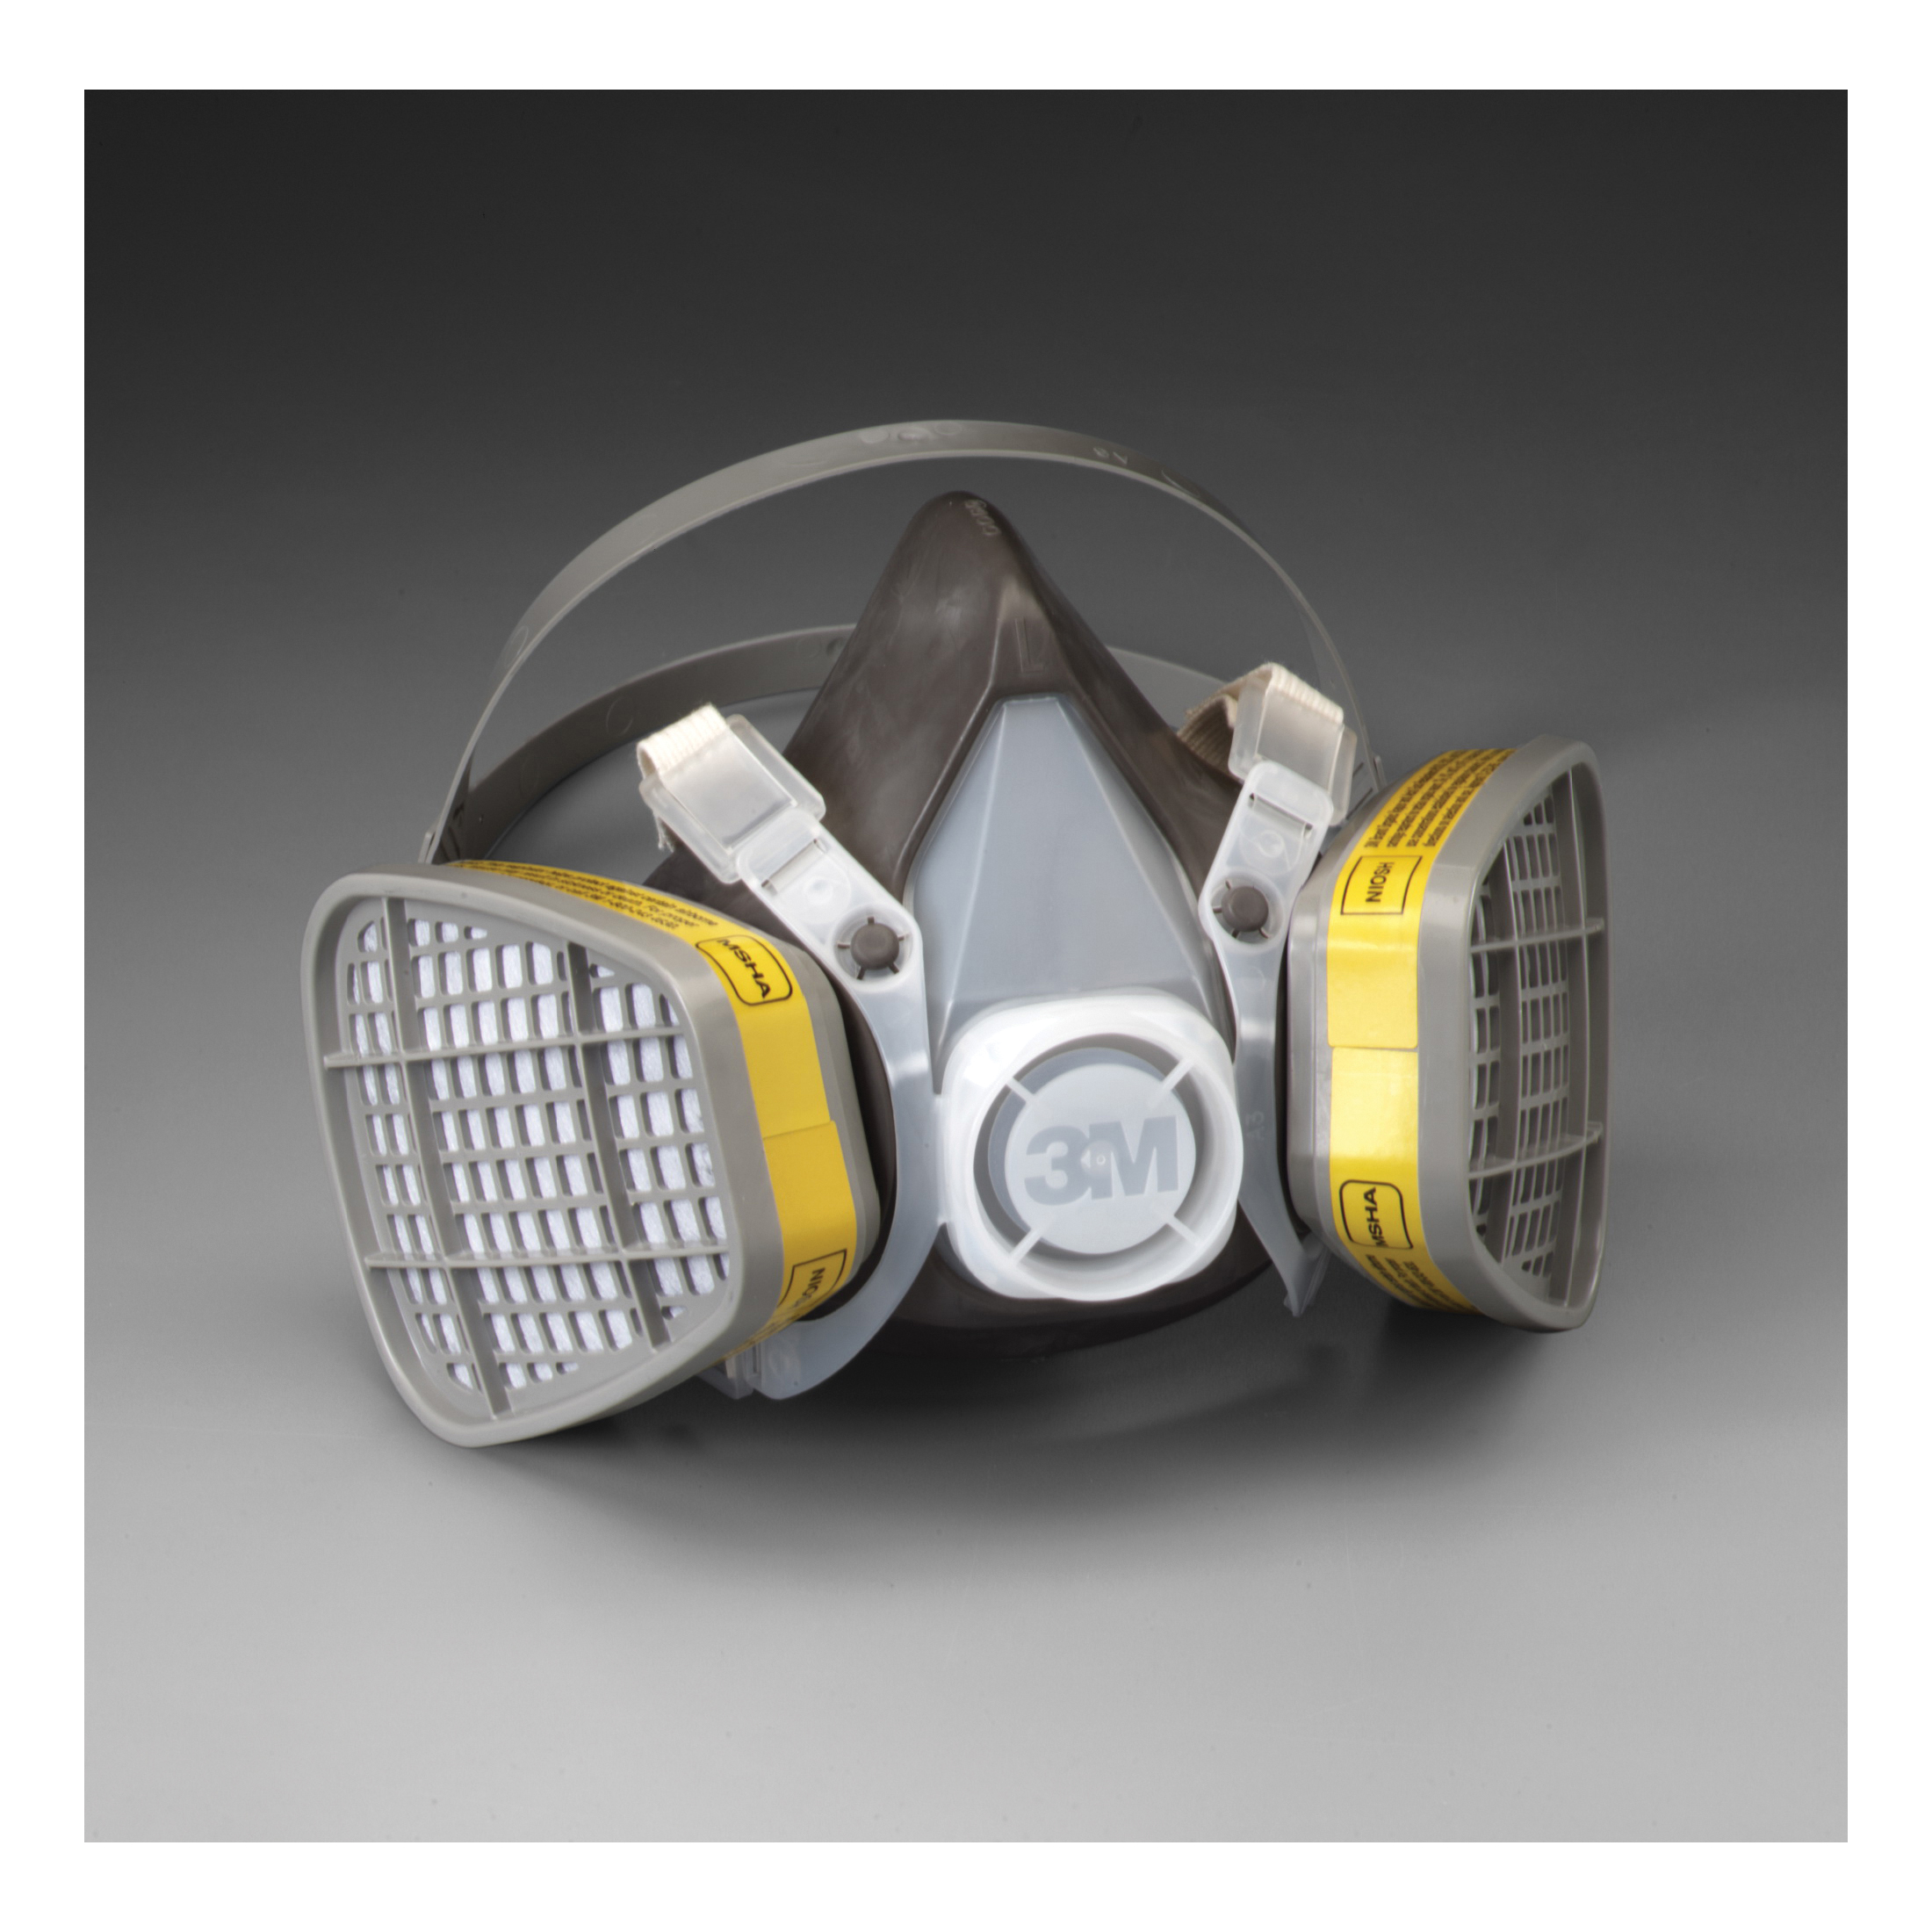 3M™ 051138-21579 5303 5000 Disposable Half Facepiece Respirator Assembly, L, Resists: Acid Gas, Chlorine, Hydrogen Chloride, Hydrogen Fluoride, Hydrogen Sulfide, Organic Vapors and Sulfur Dioxide